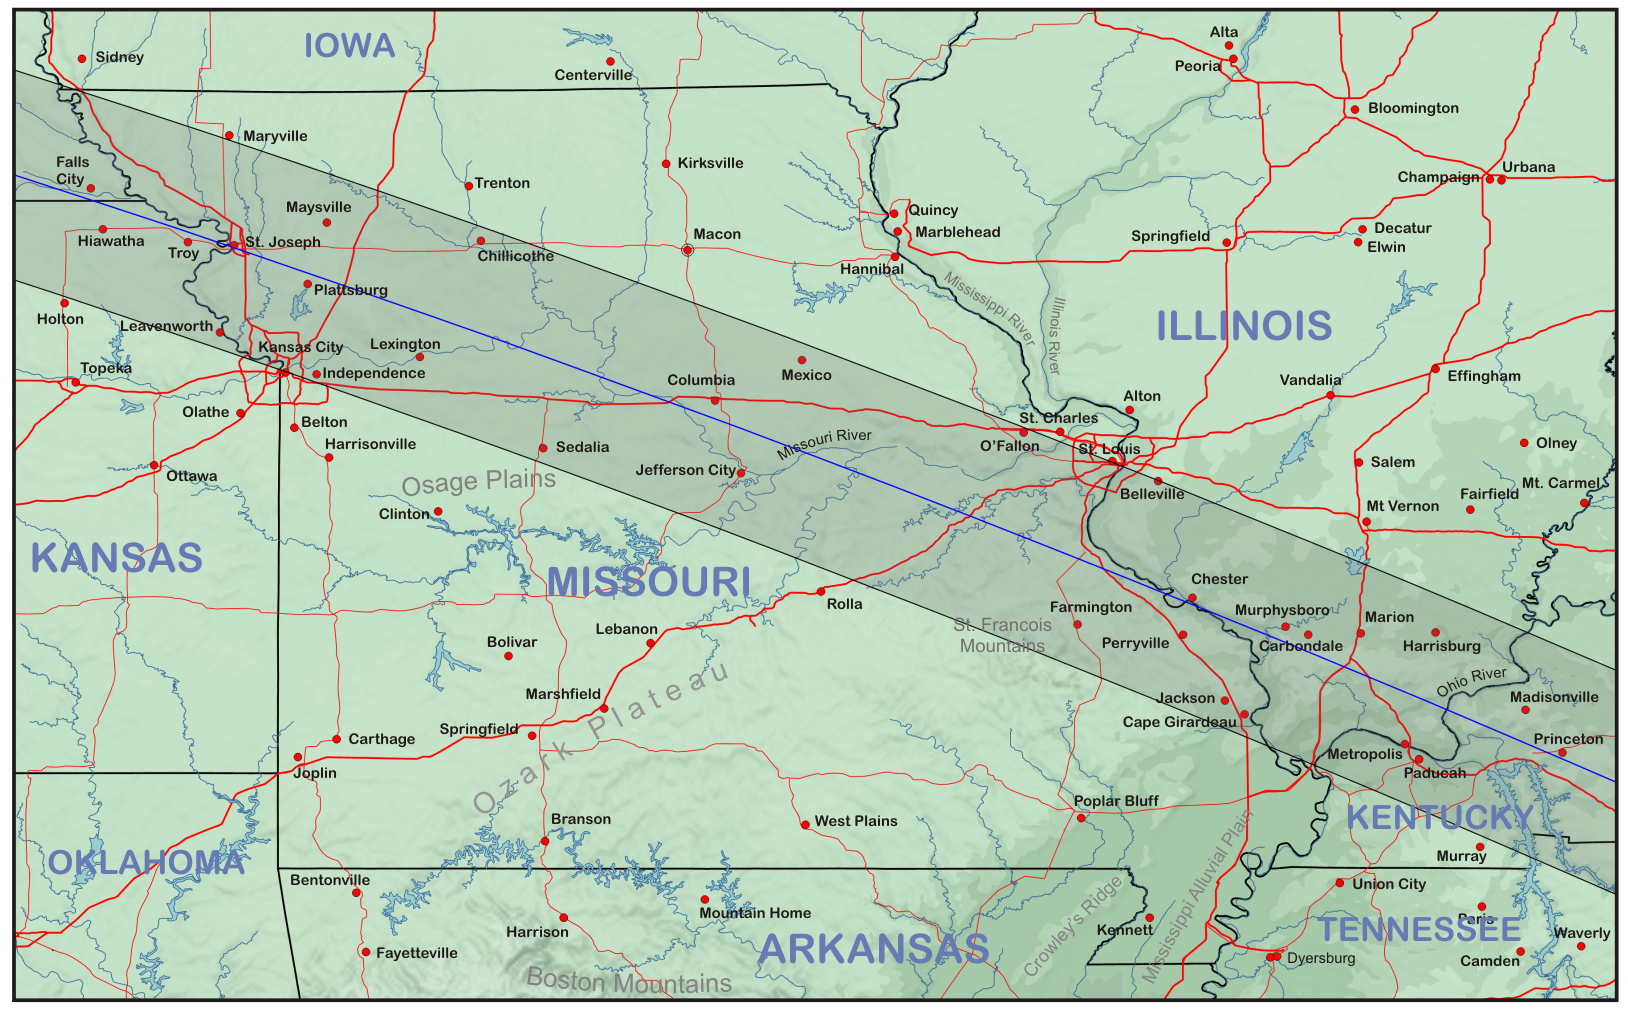 Missouri and Illinois | Eclipsophile